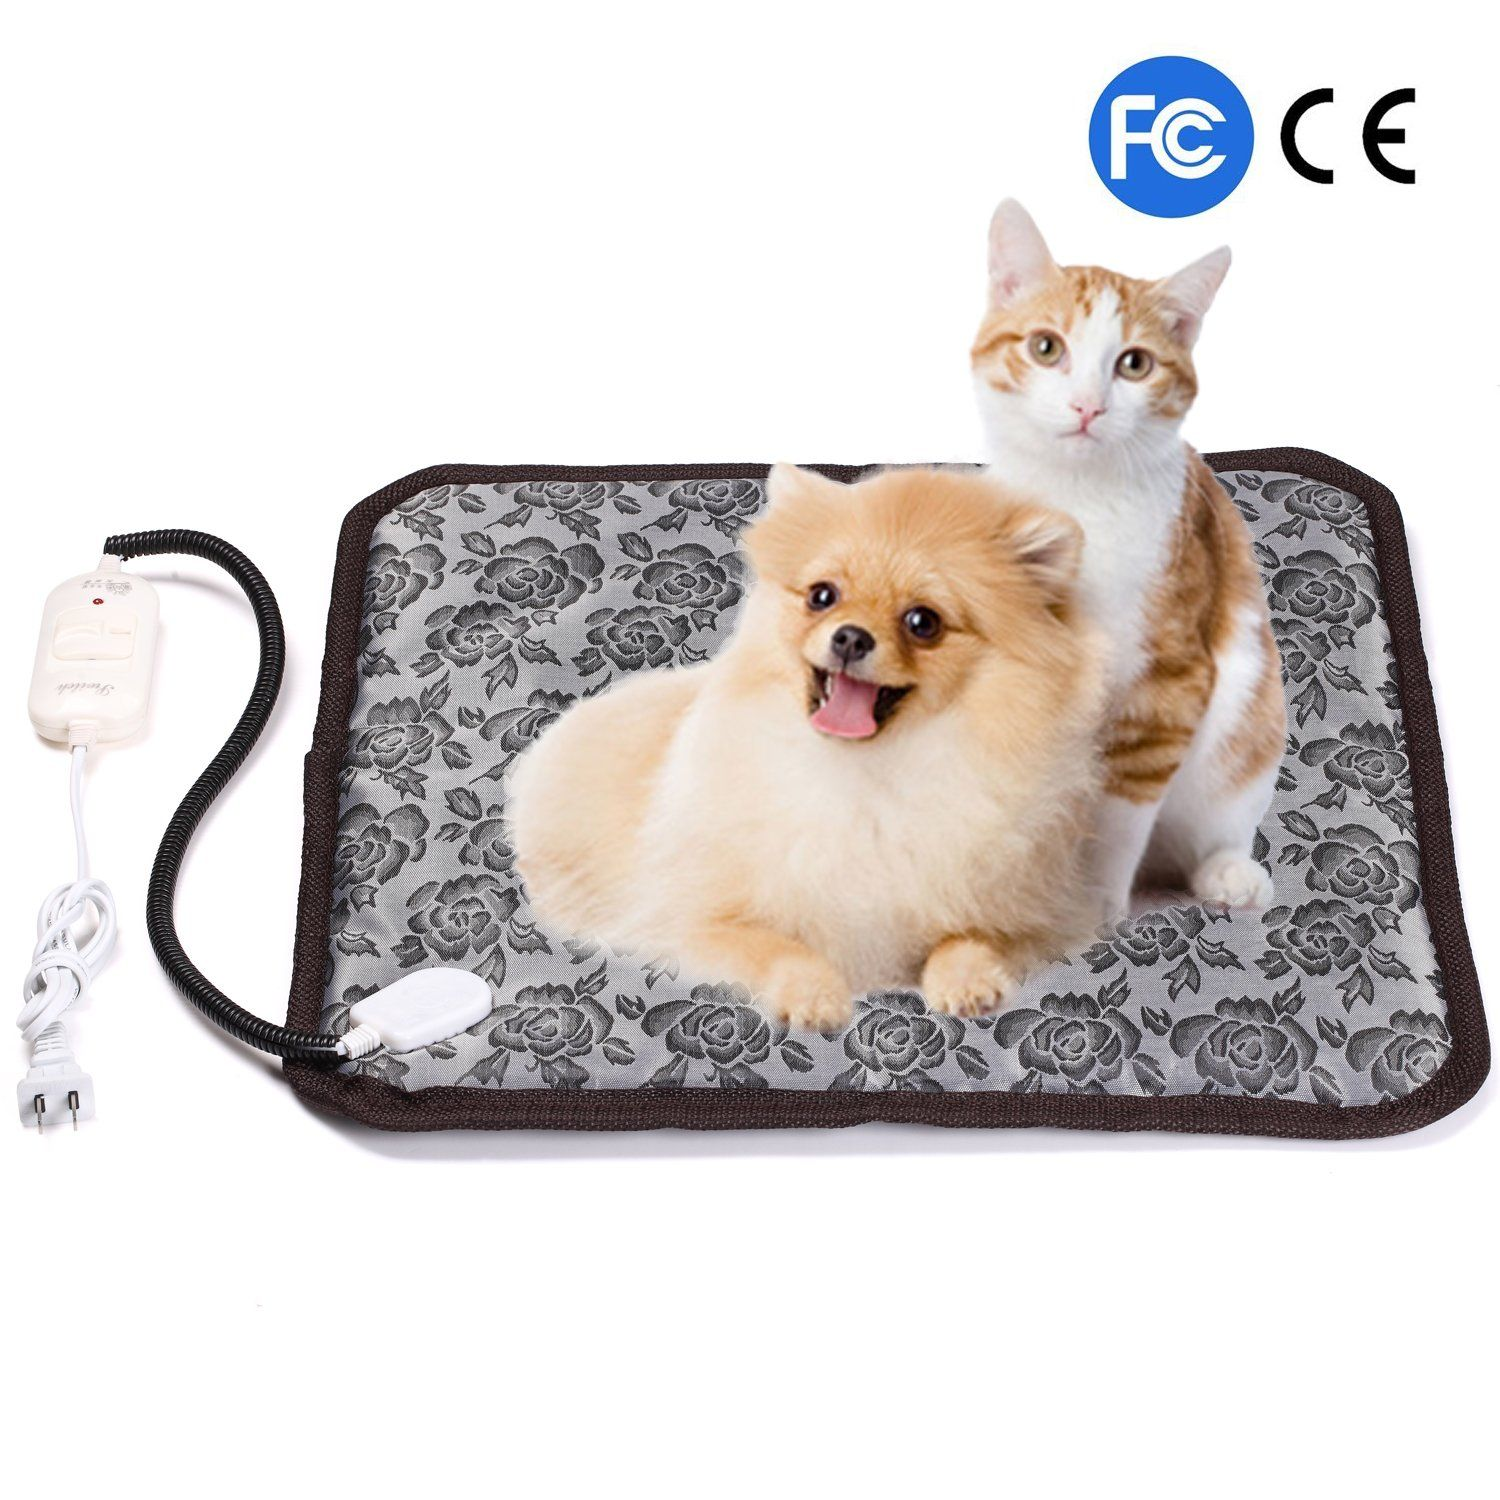 Pet Heating Pad Firow Electric Heated Bed Warming Pad Pet Bed